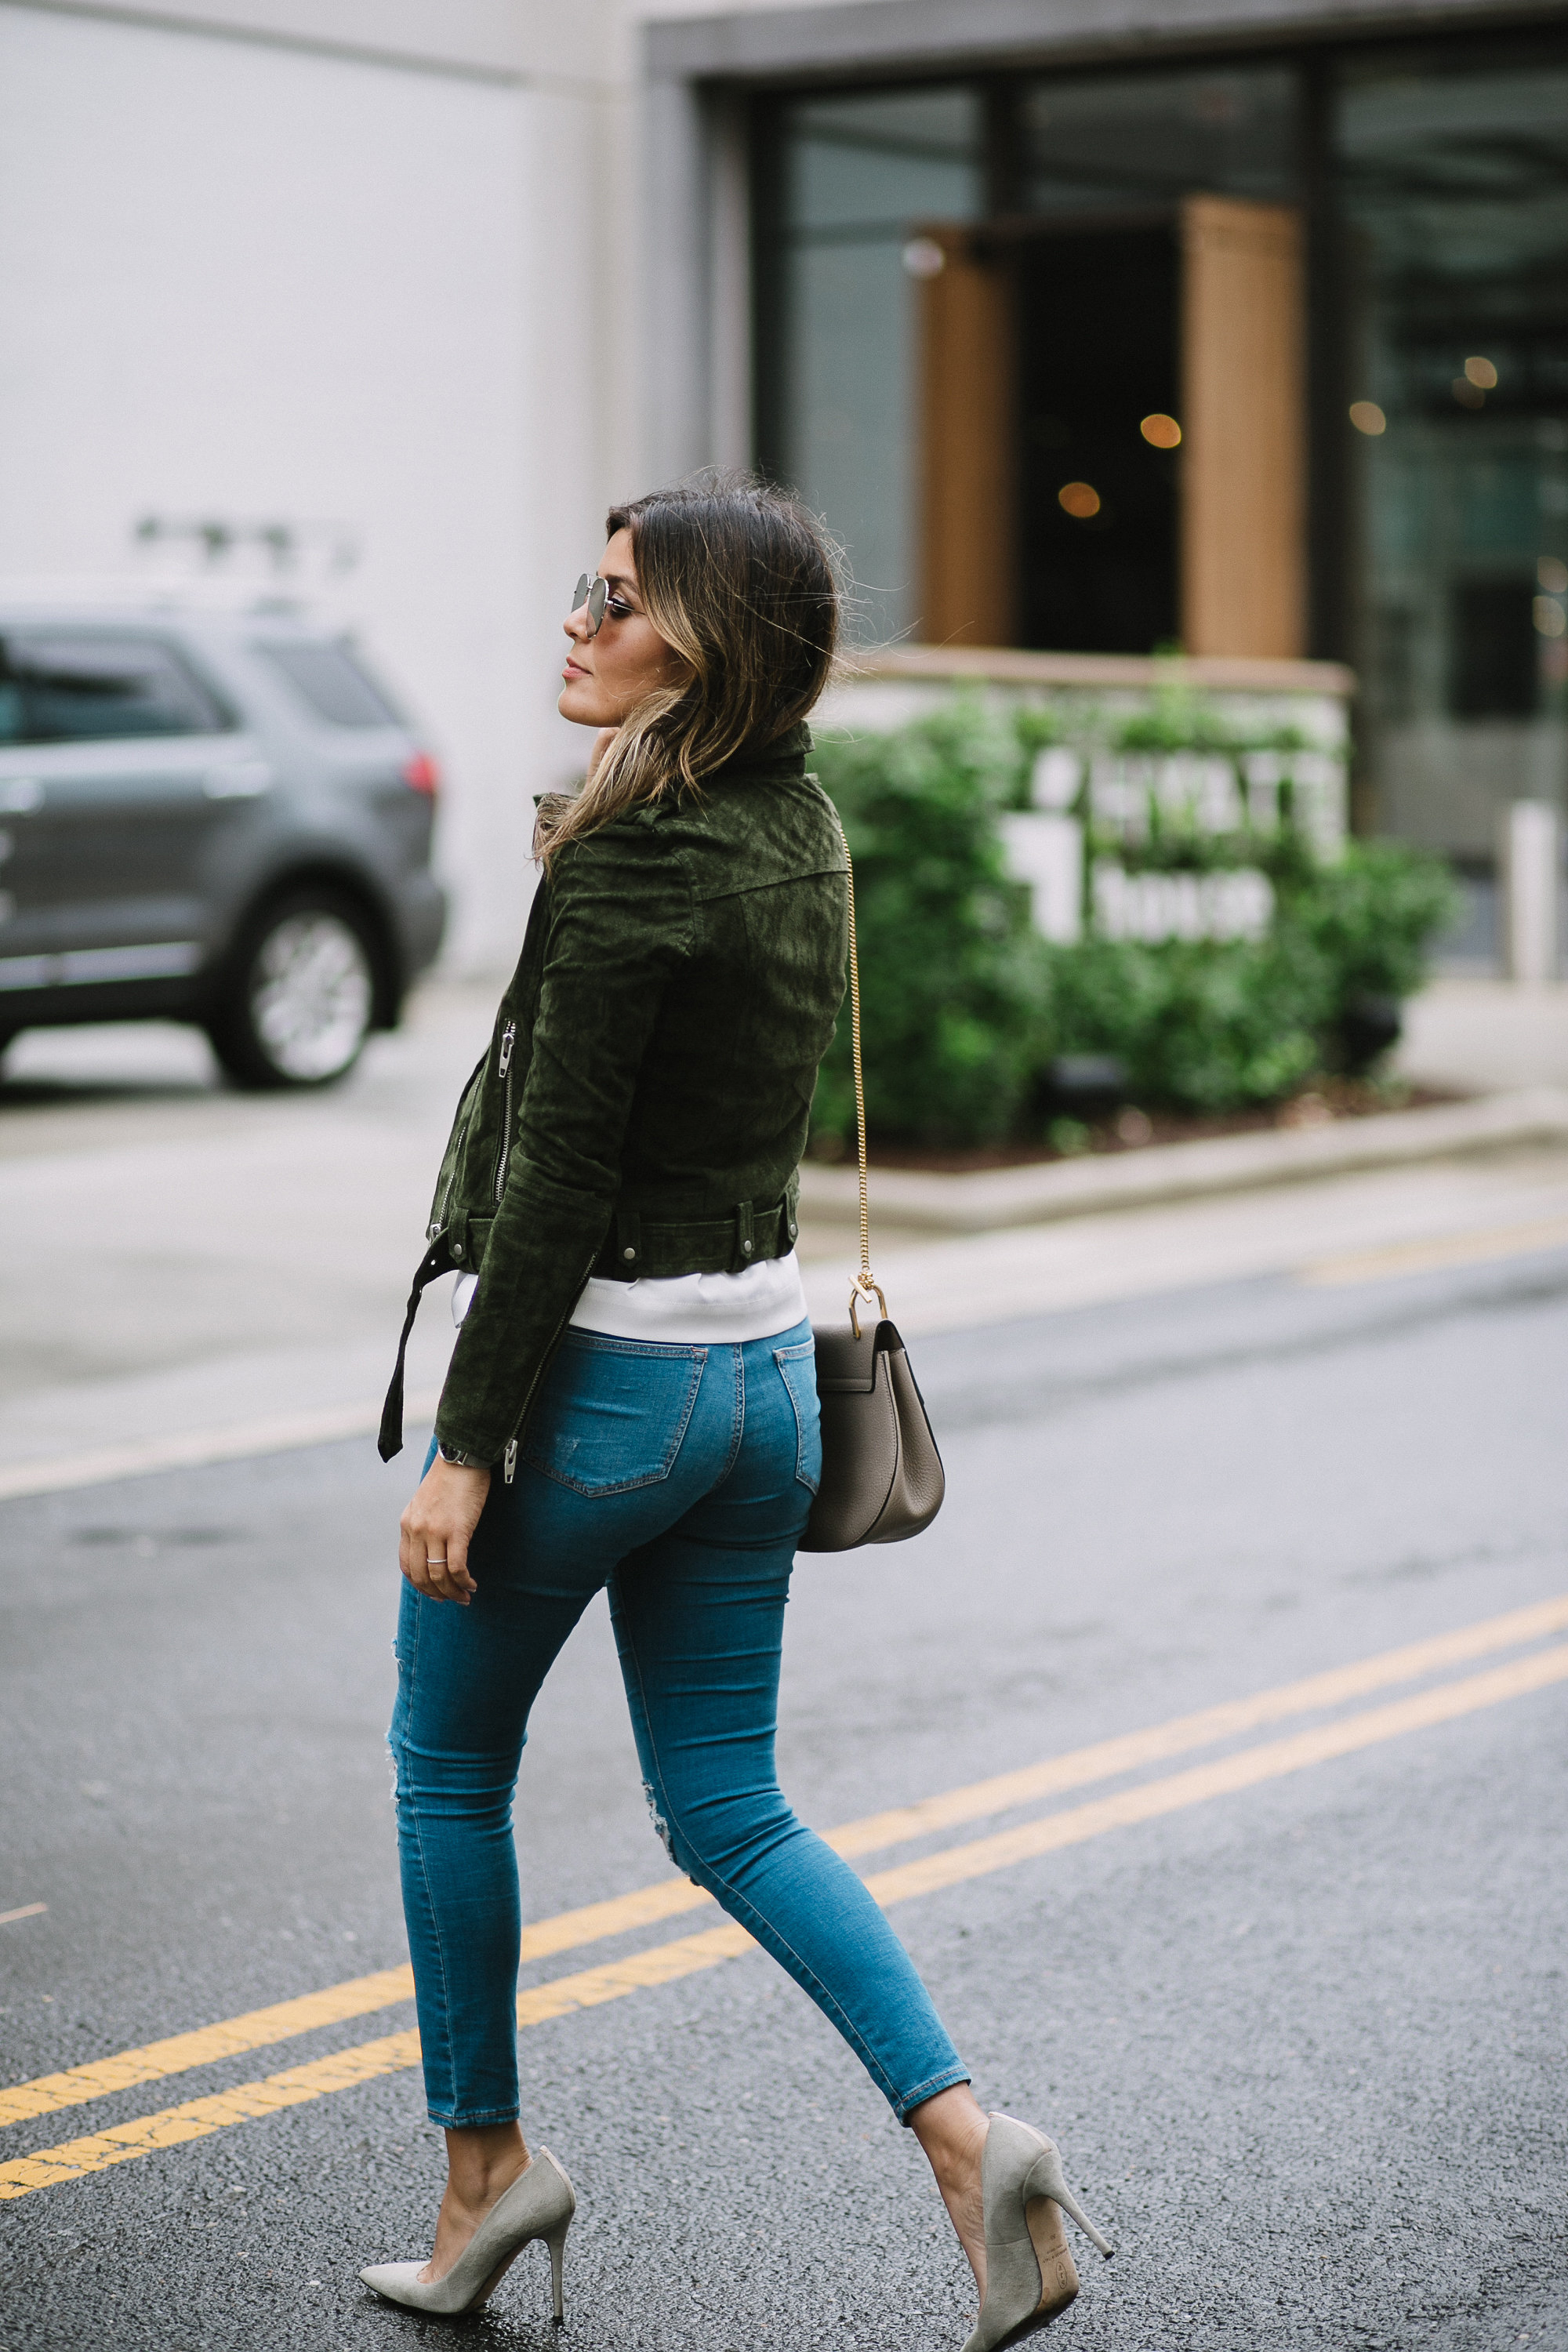 Style MBA wears Nordstrom Suede Moto Jacket and Topshop Denim